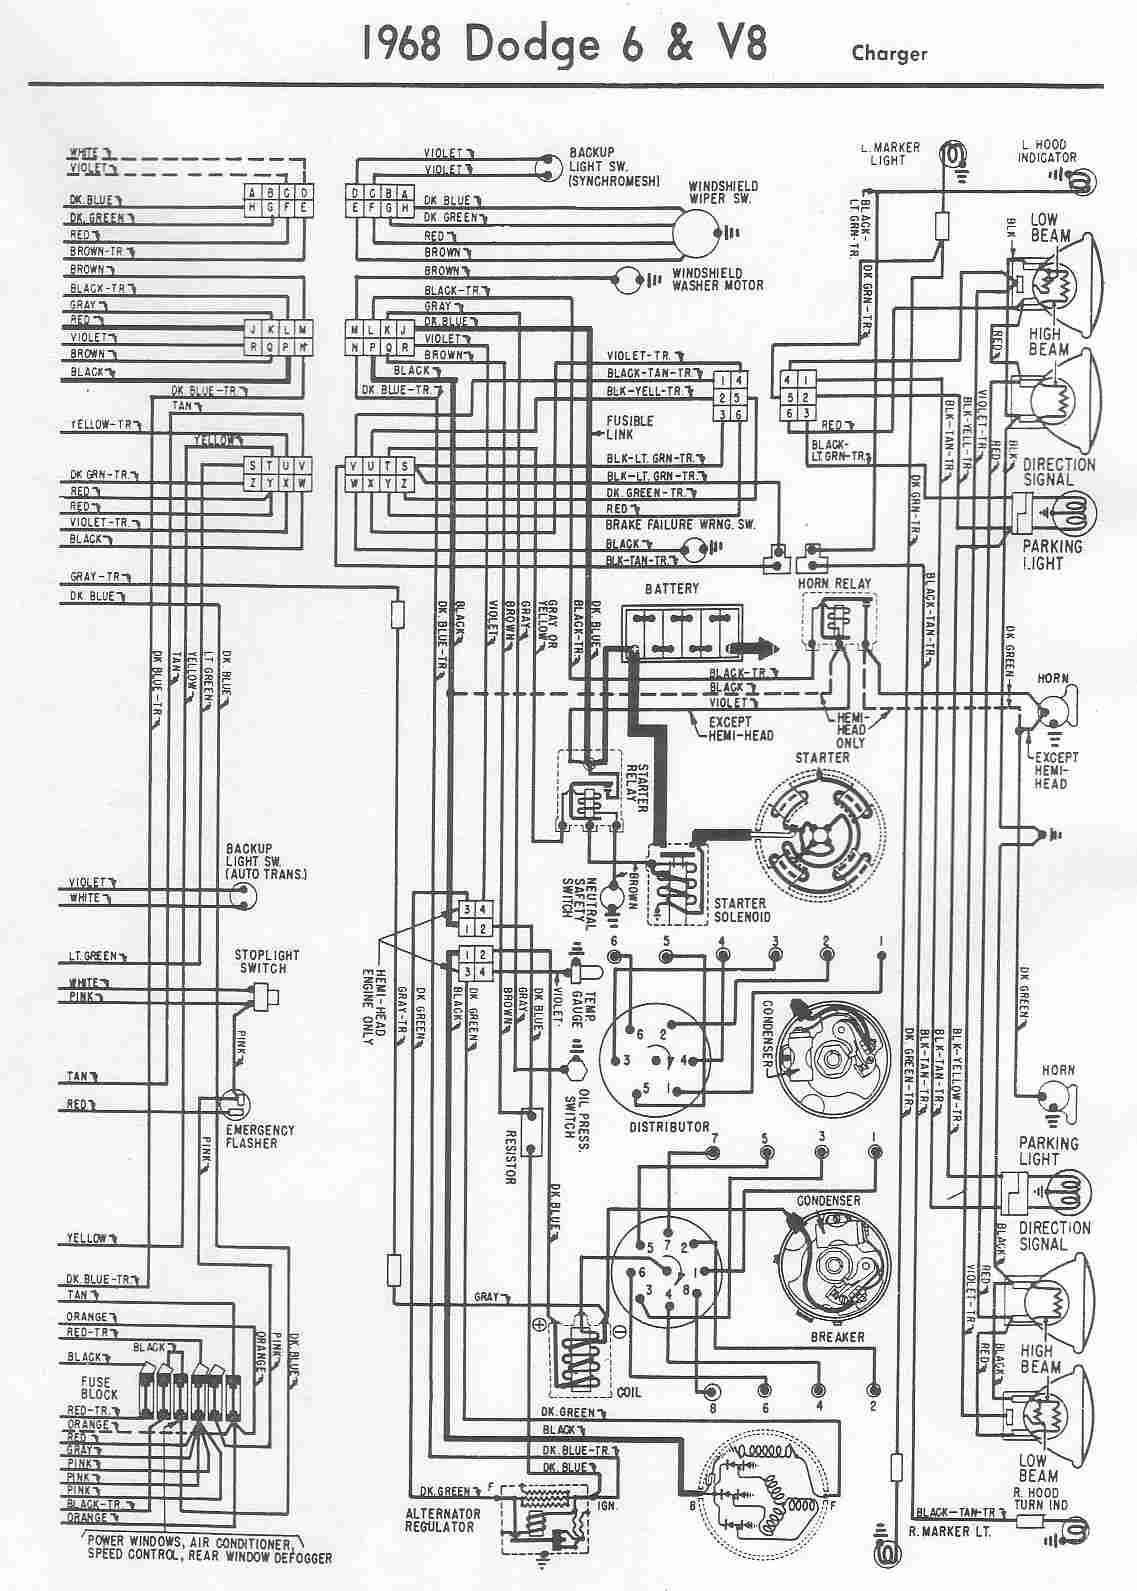 charger electrical wiring diagram of 1968 dodge 6 and v8?t=1508404771 dodge car manuals, wiring diagrams pdf & fault codes